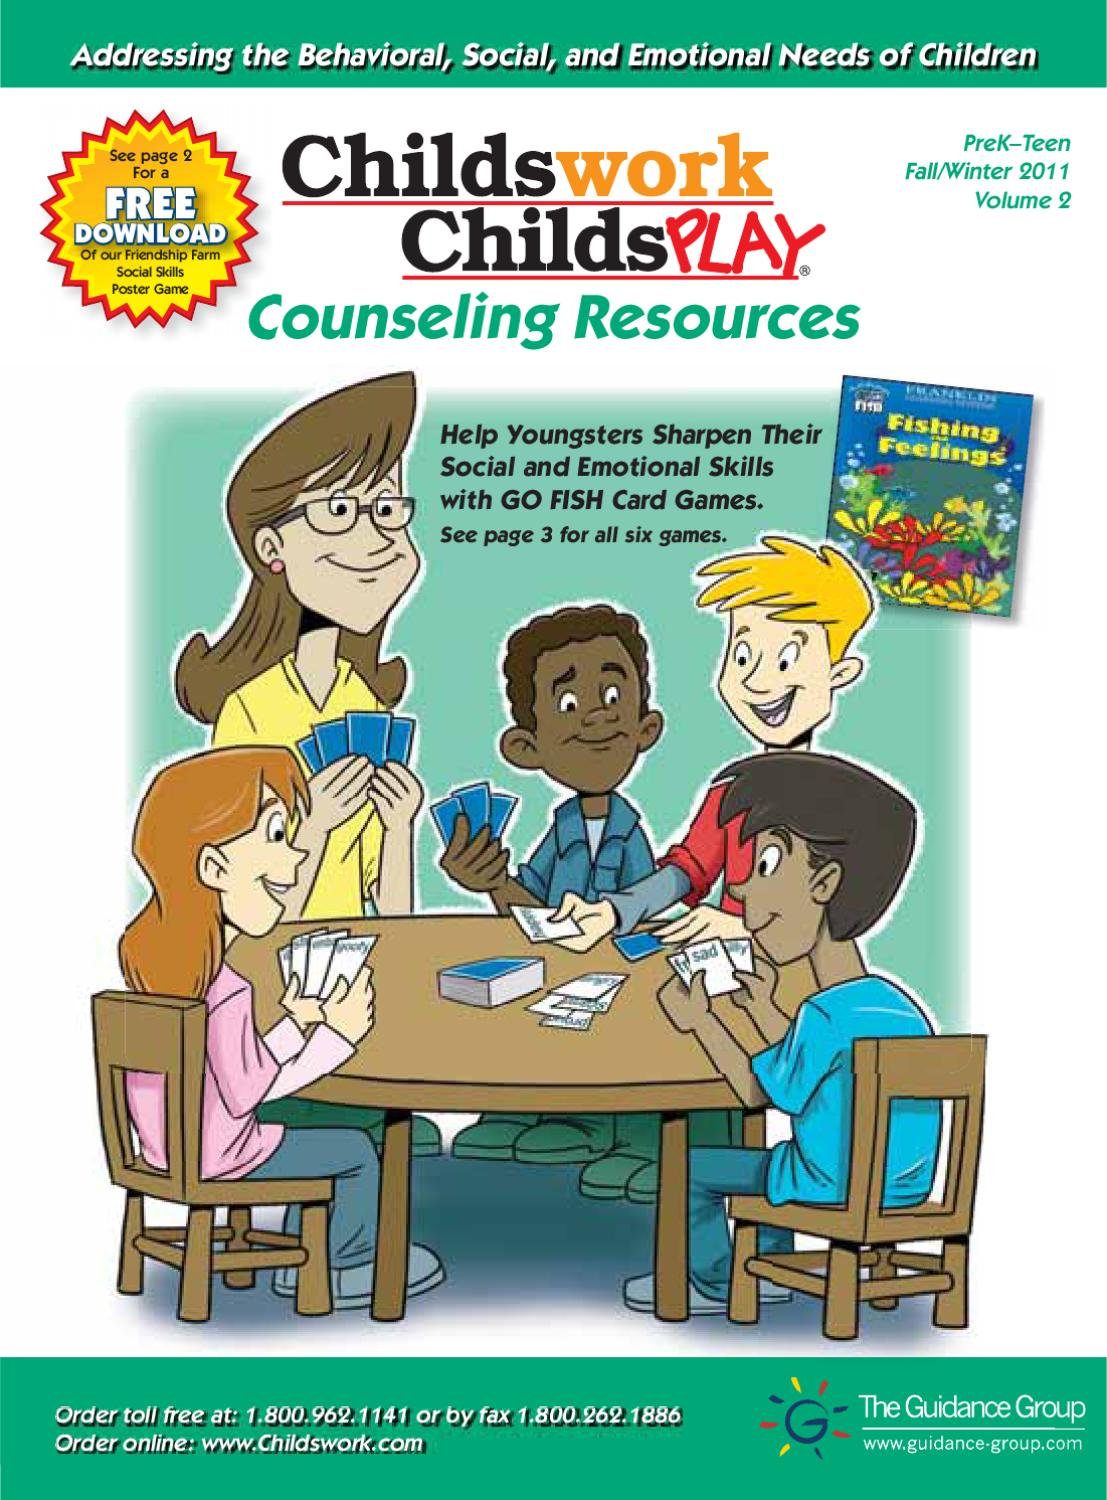 Childswork/Childsplay by The Guidance Group - issuu